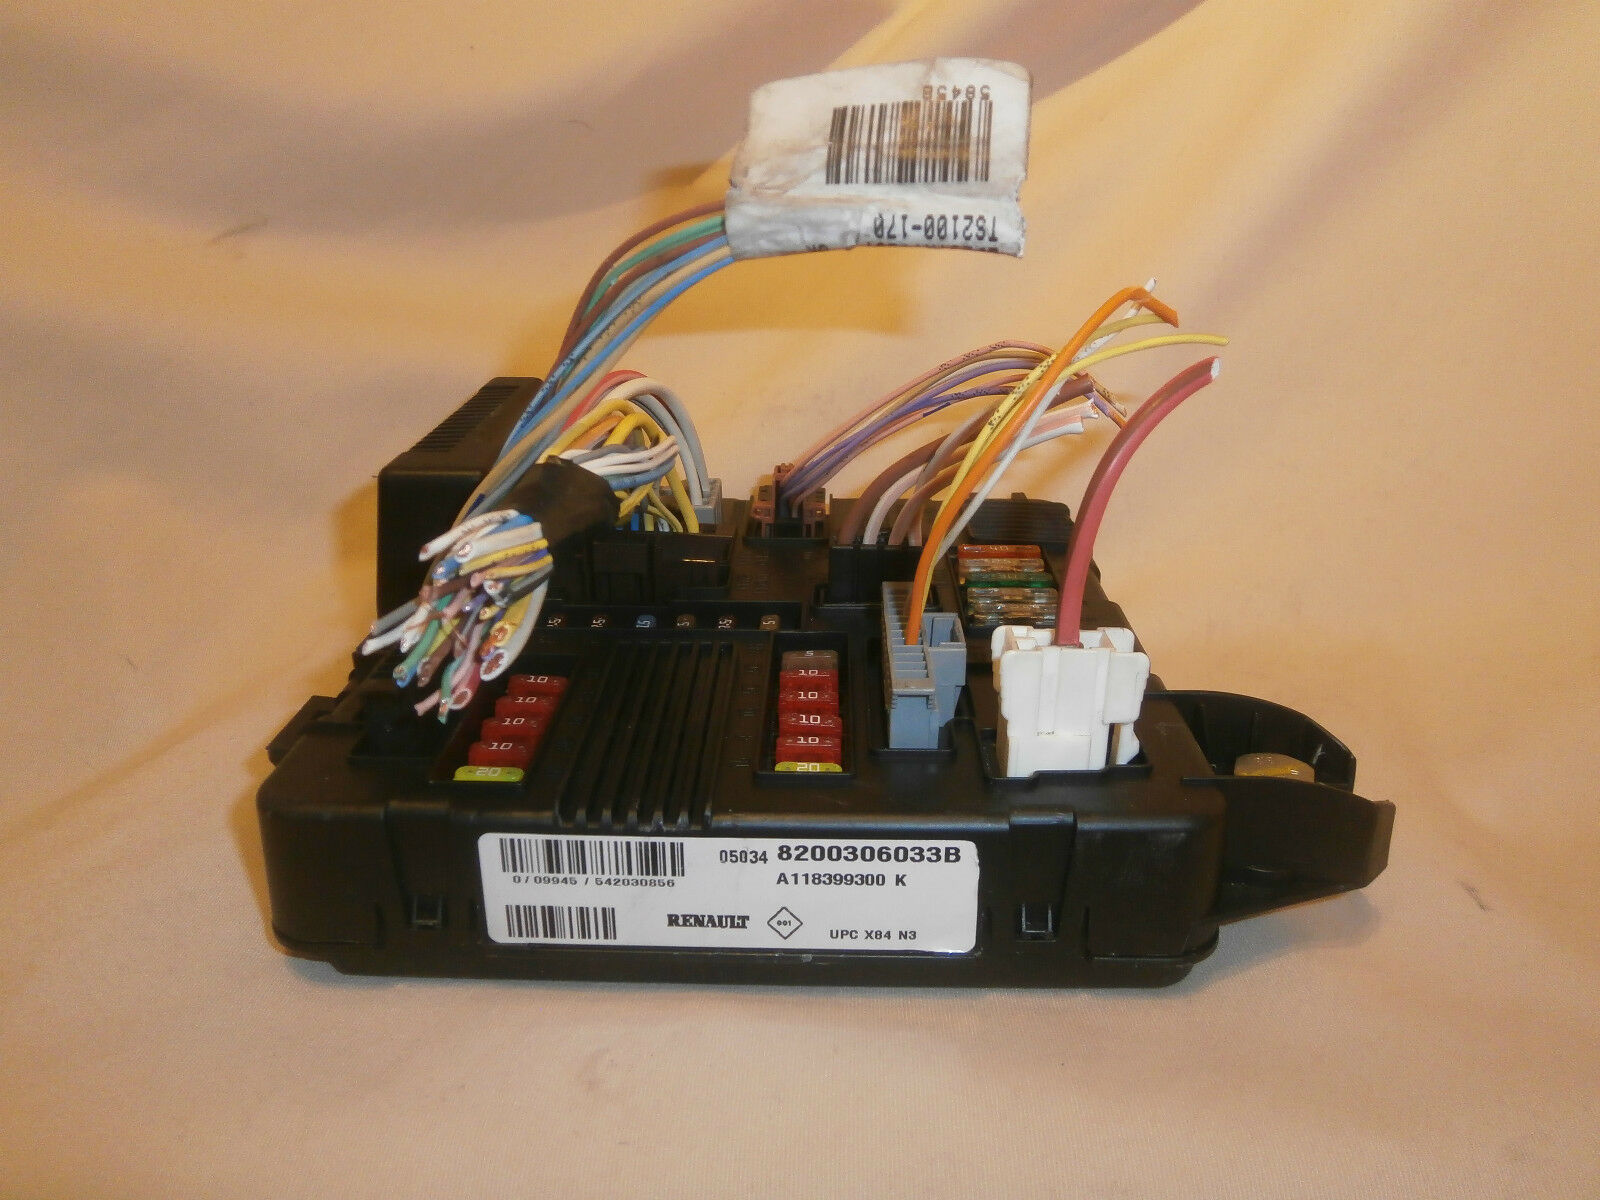 Renault Megane Ii Fusebox Body Control 8200306033b 6399 Fuse Box 1 Of 3 See More